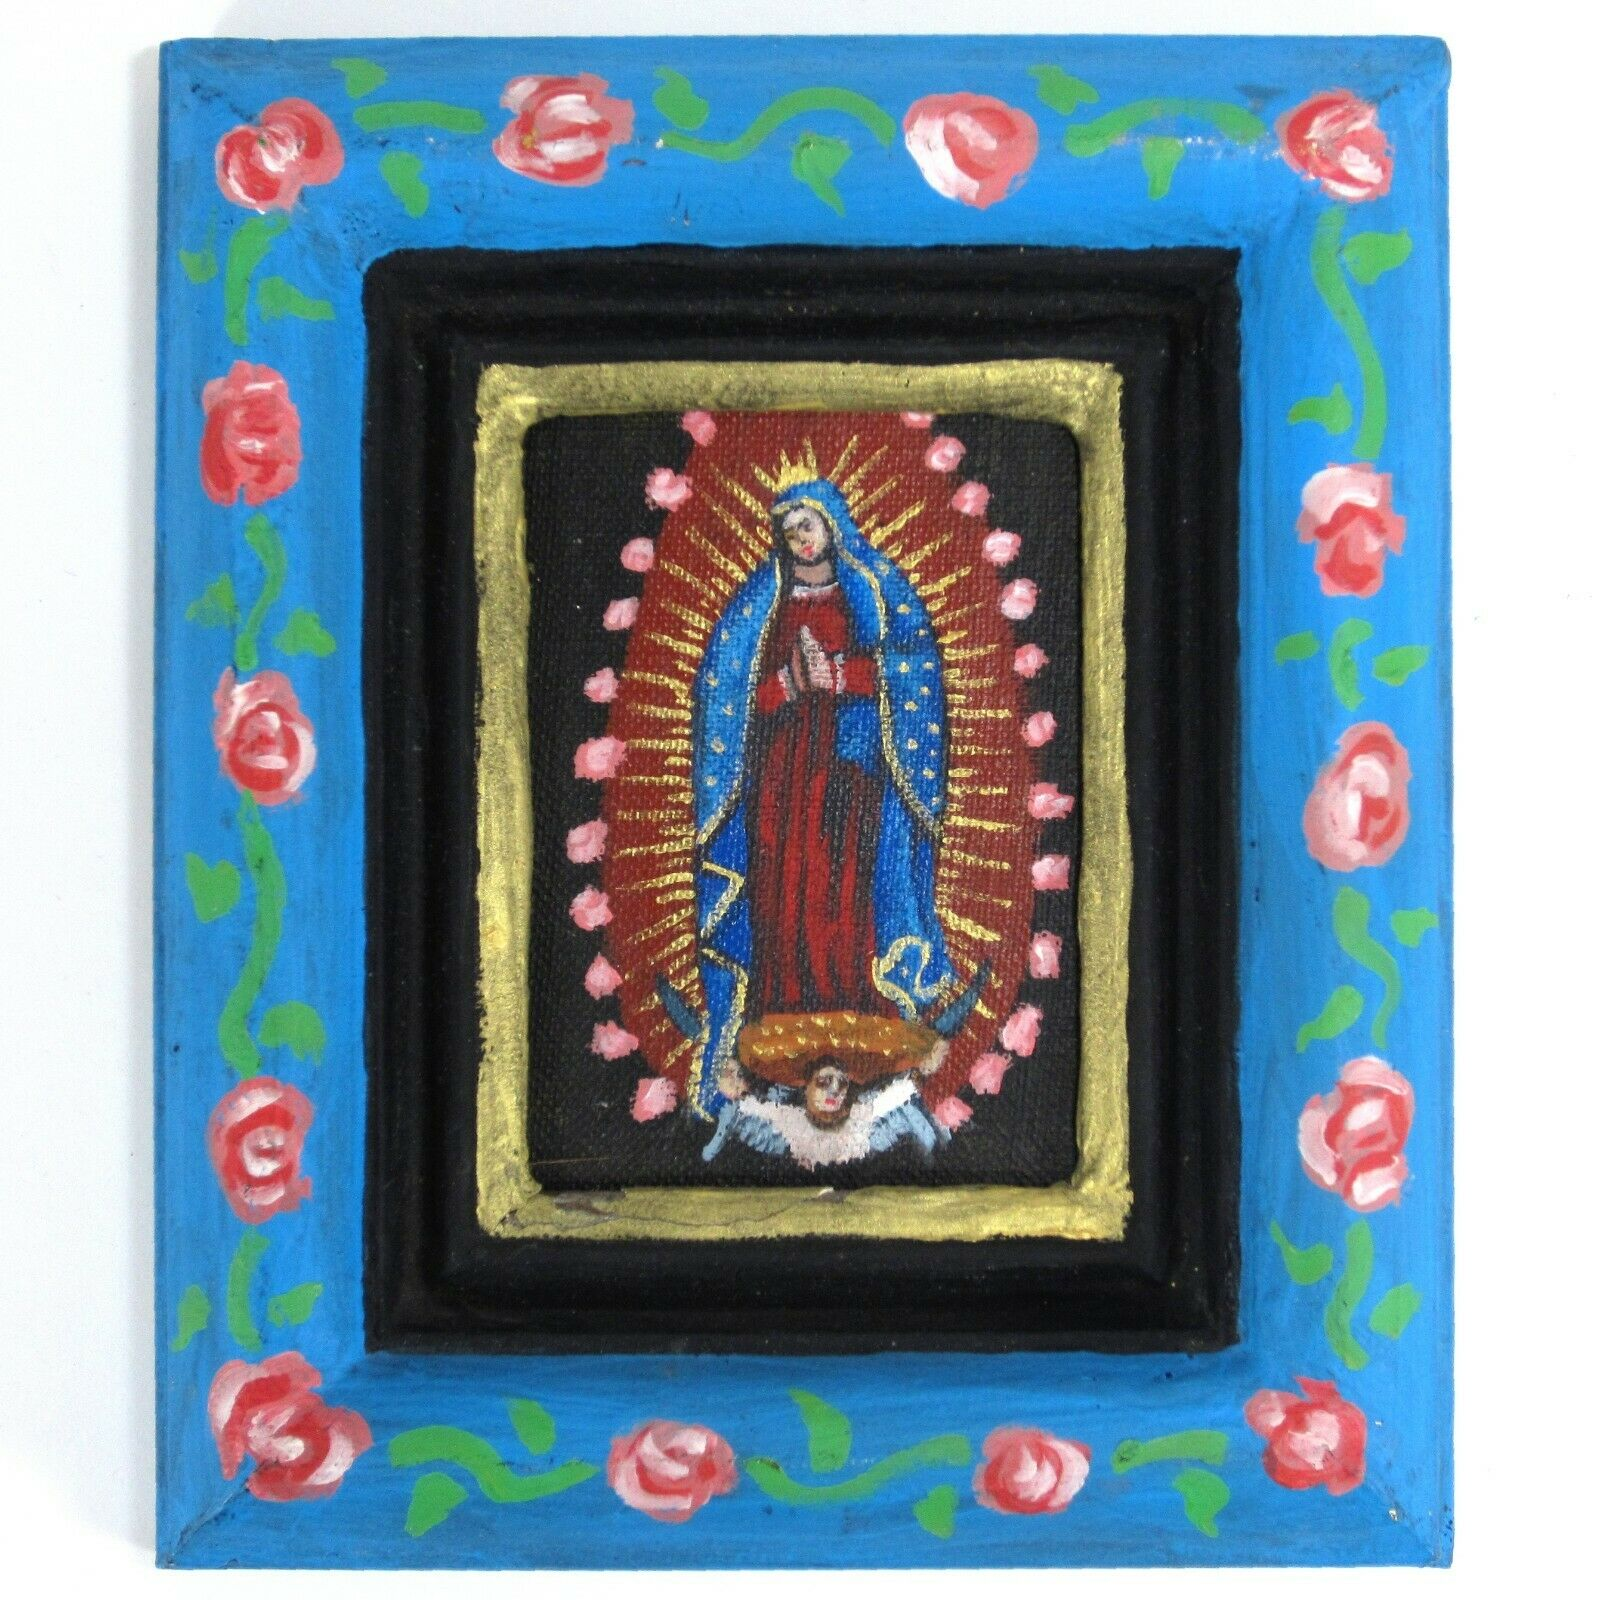 Miniature Virgin of Guadalupe Acrylic Painting in Hand-painted Frame Earl Staley 1